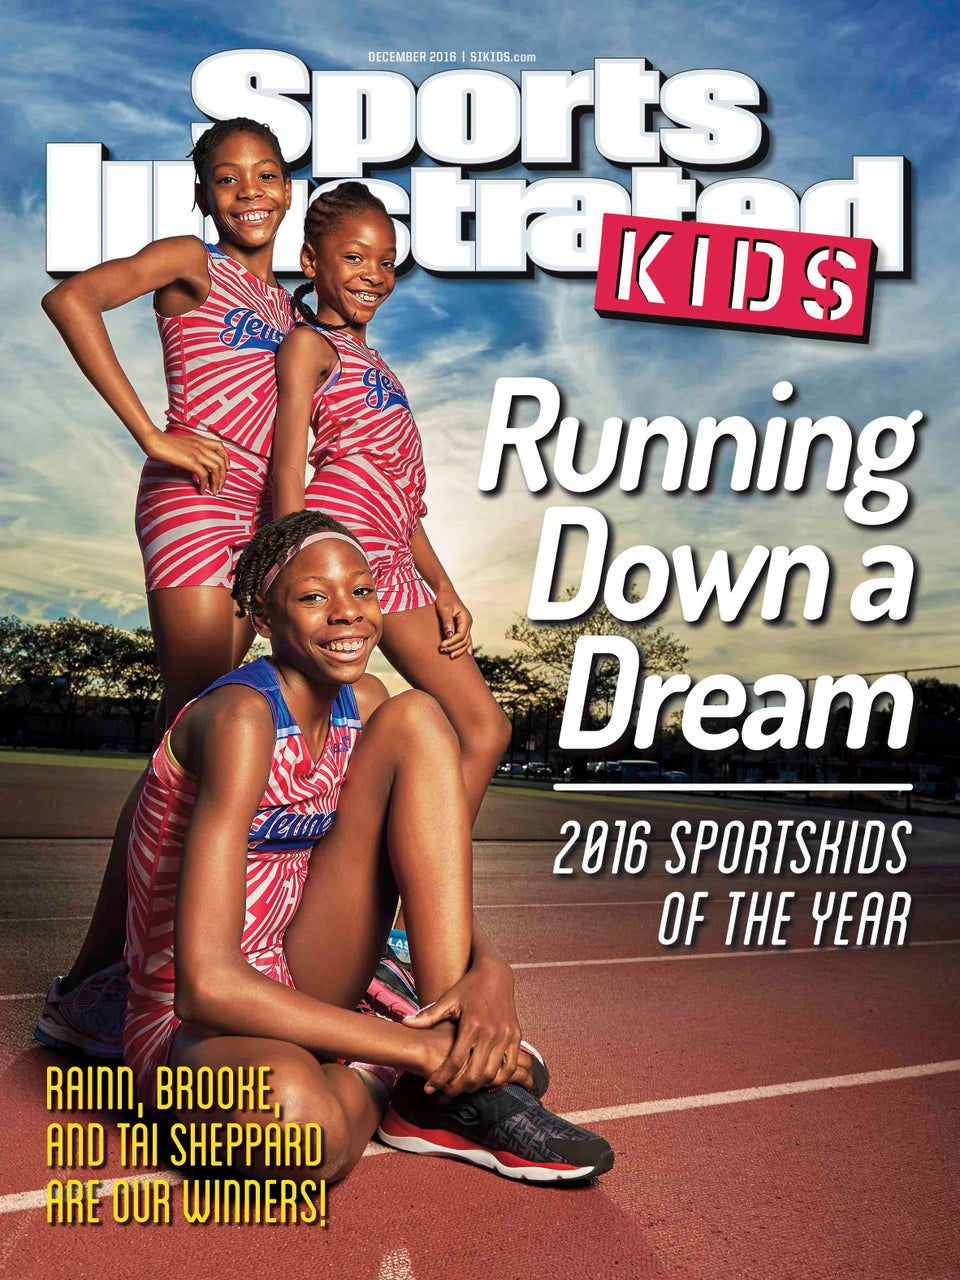 Black Girl Magic: The Sheppard Sisters Are The 2016 Sports Illustrated SportsKids Of The Year!